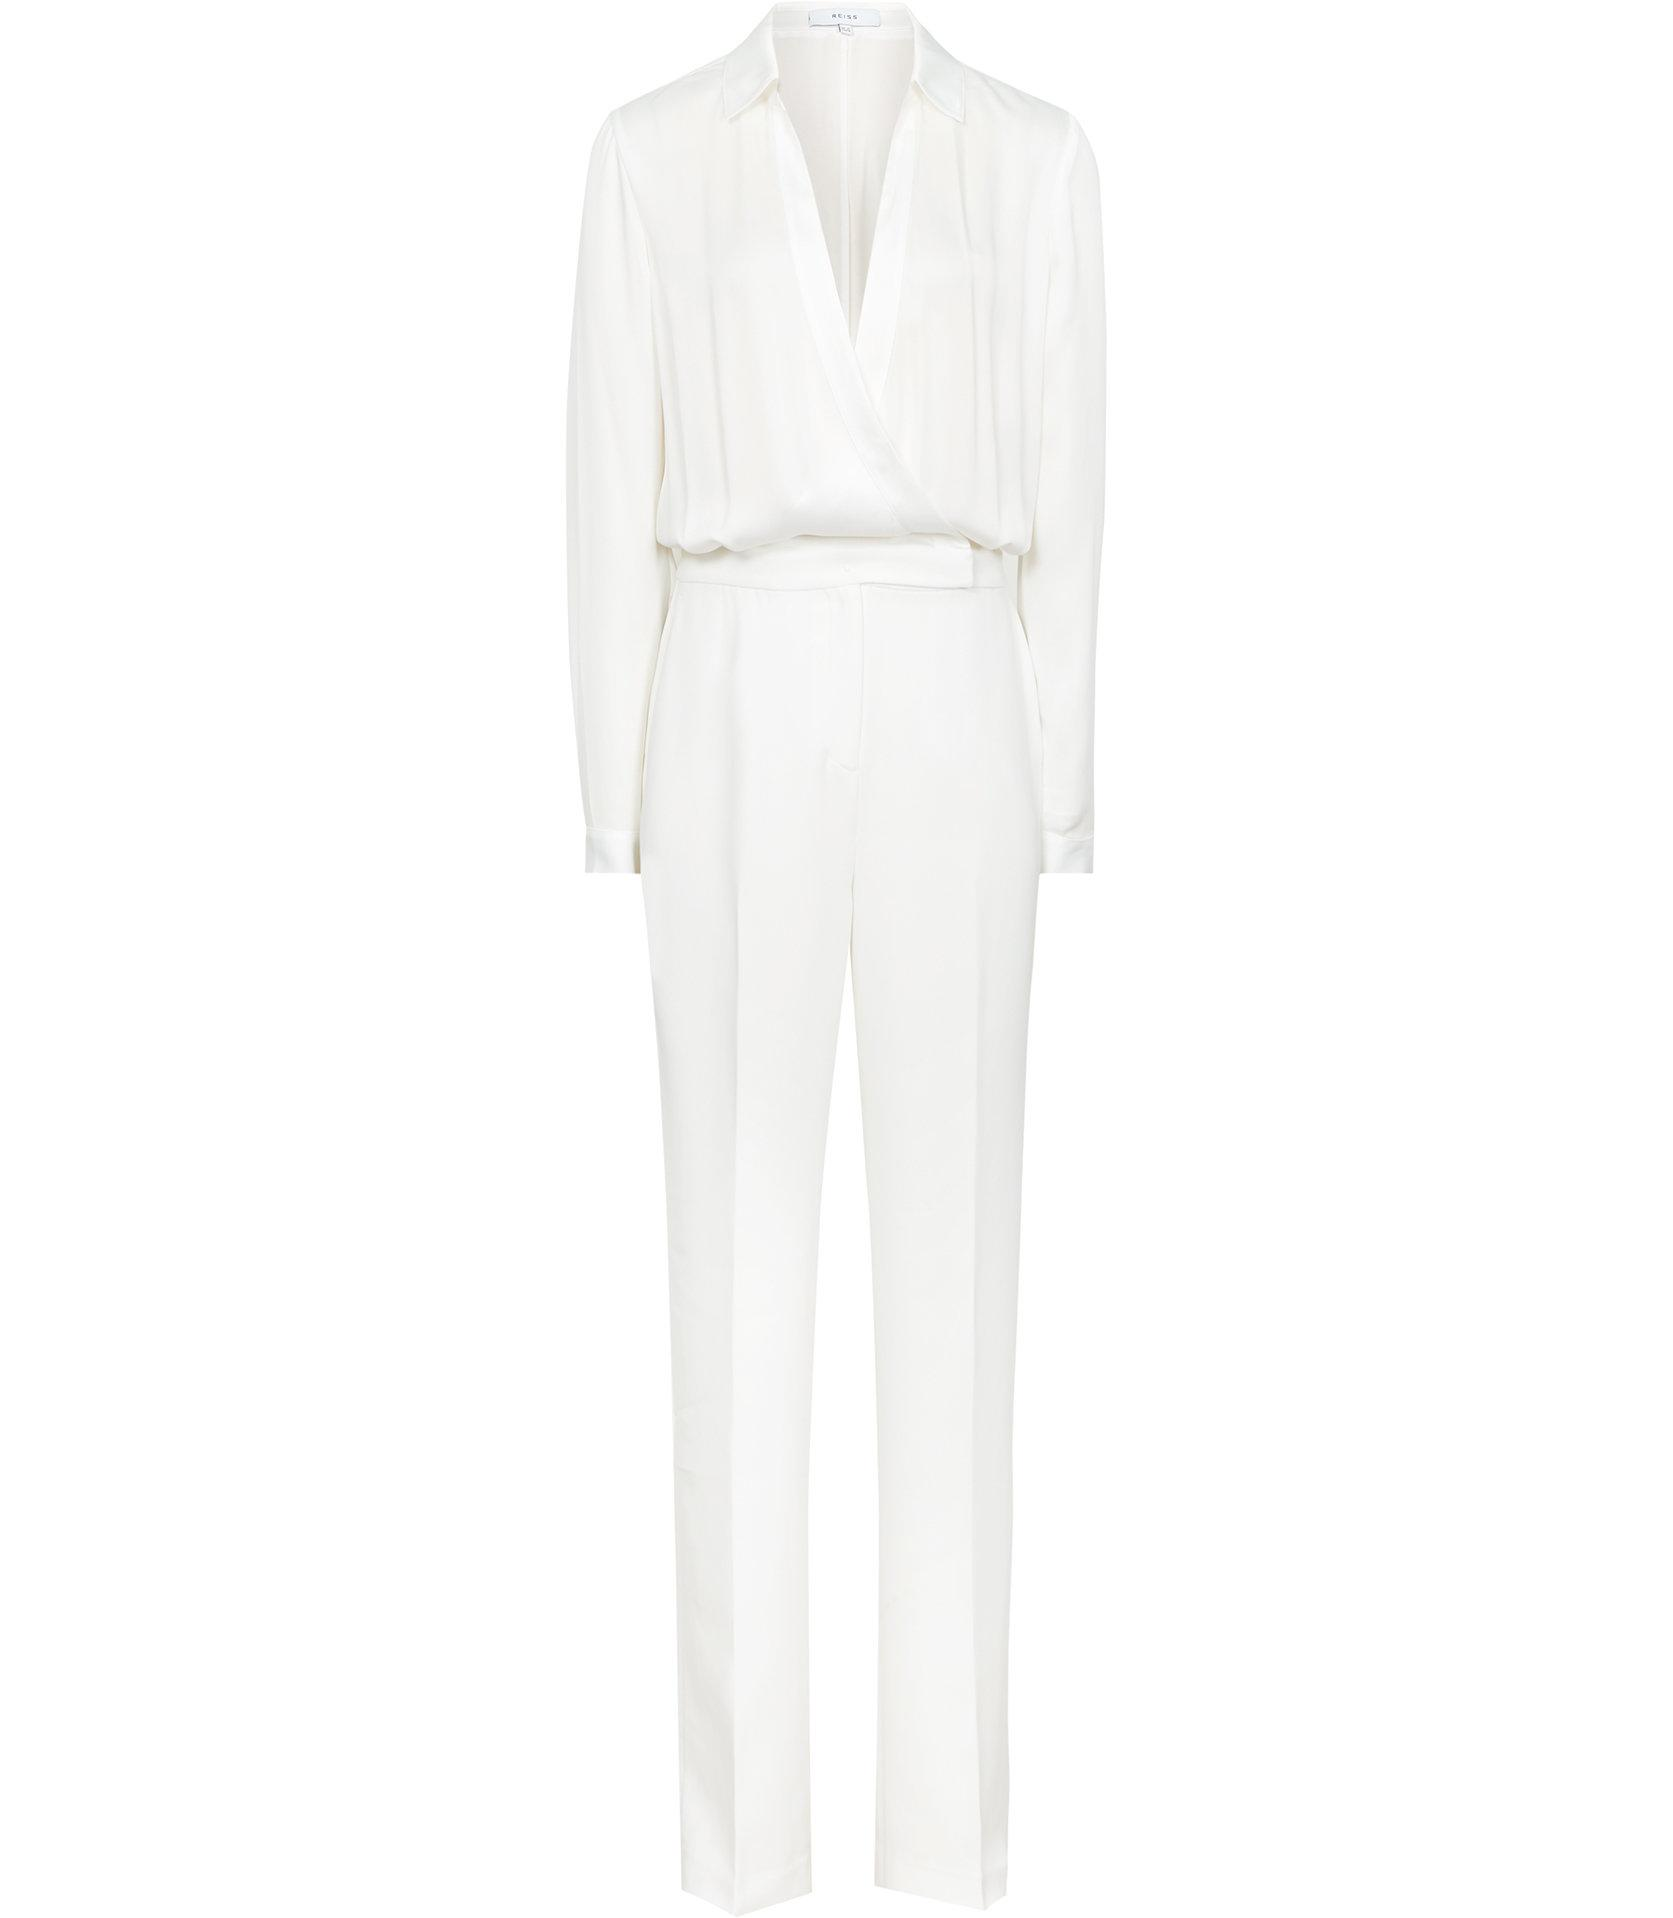 5563edd4626 Reiss Imie - Wrap-front Jumpsuit in White - Lyst